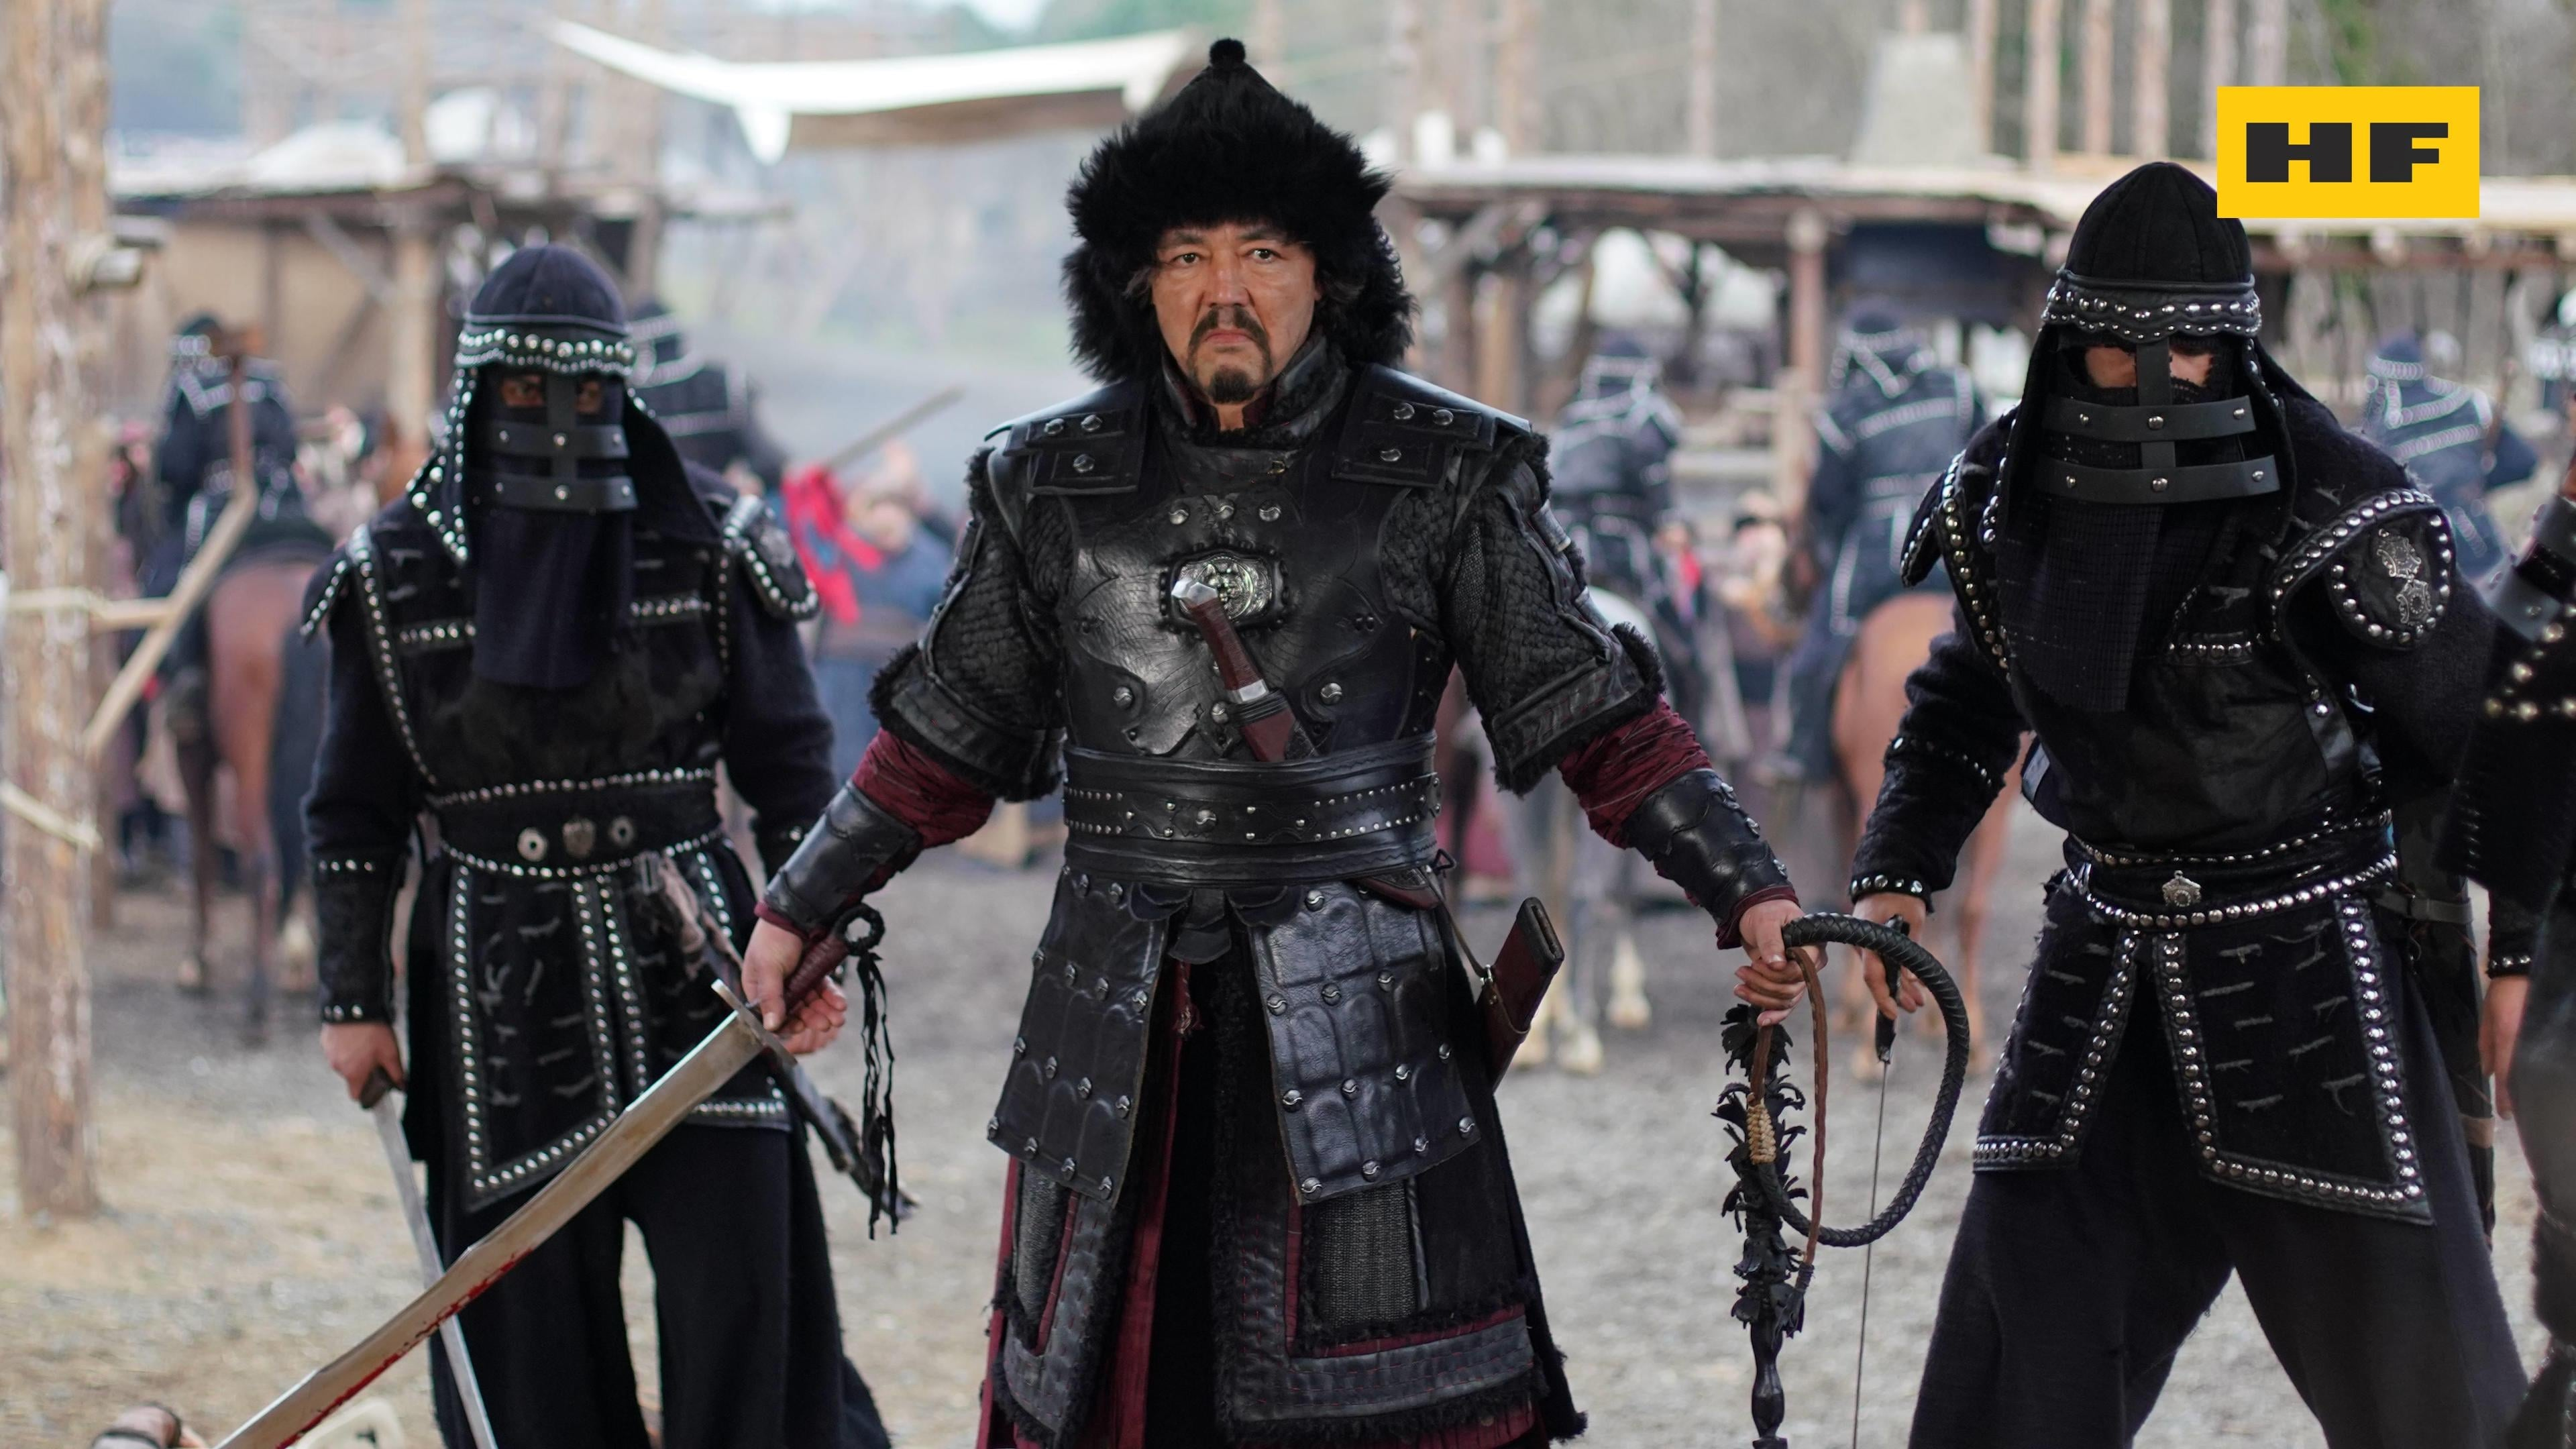 Dirilis Ertugrul Season 5 Episode 13